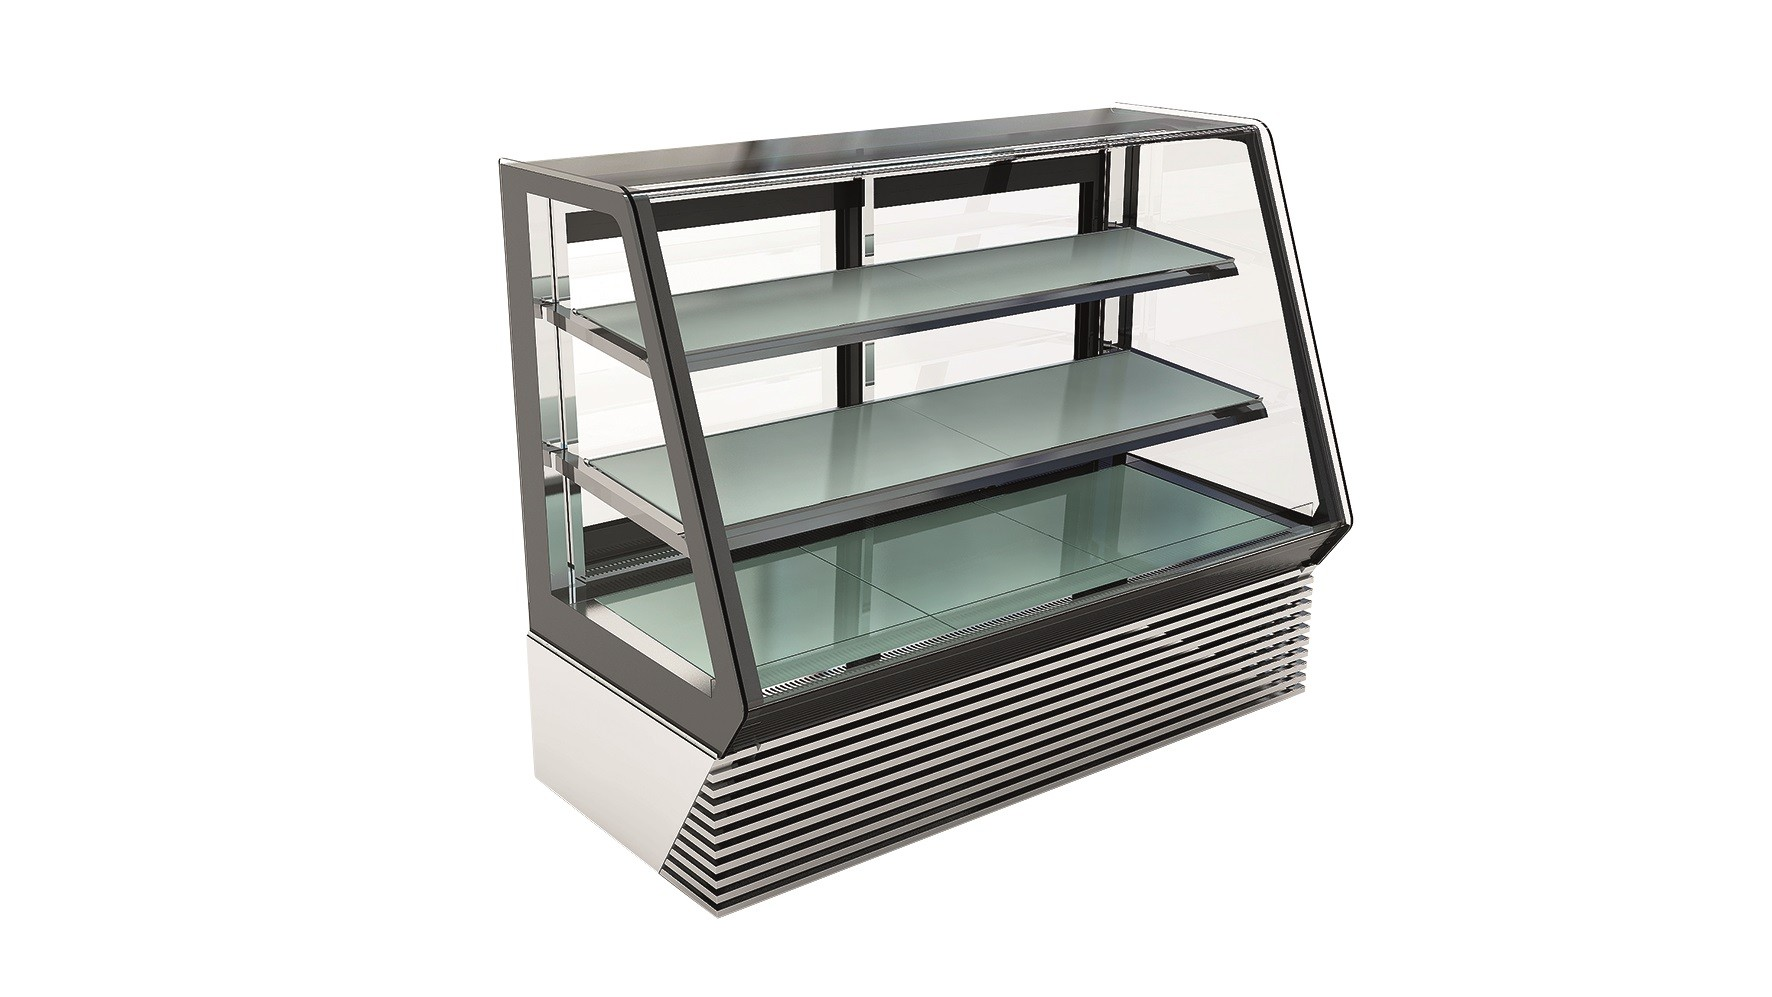 Refrigerated display unit for gastronomy / pastry